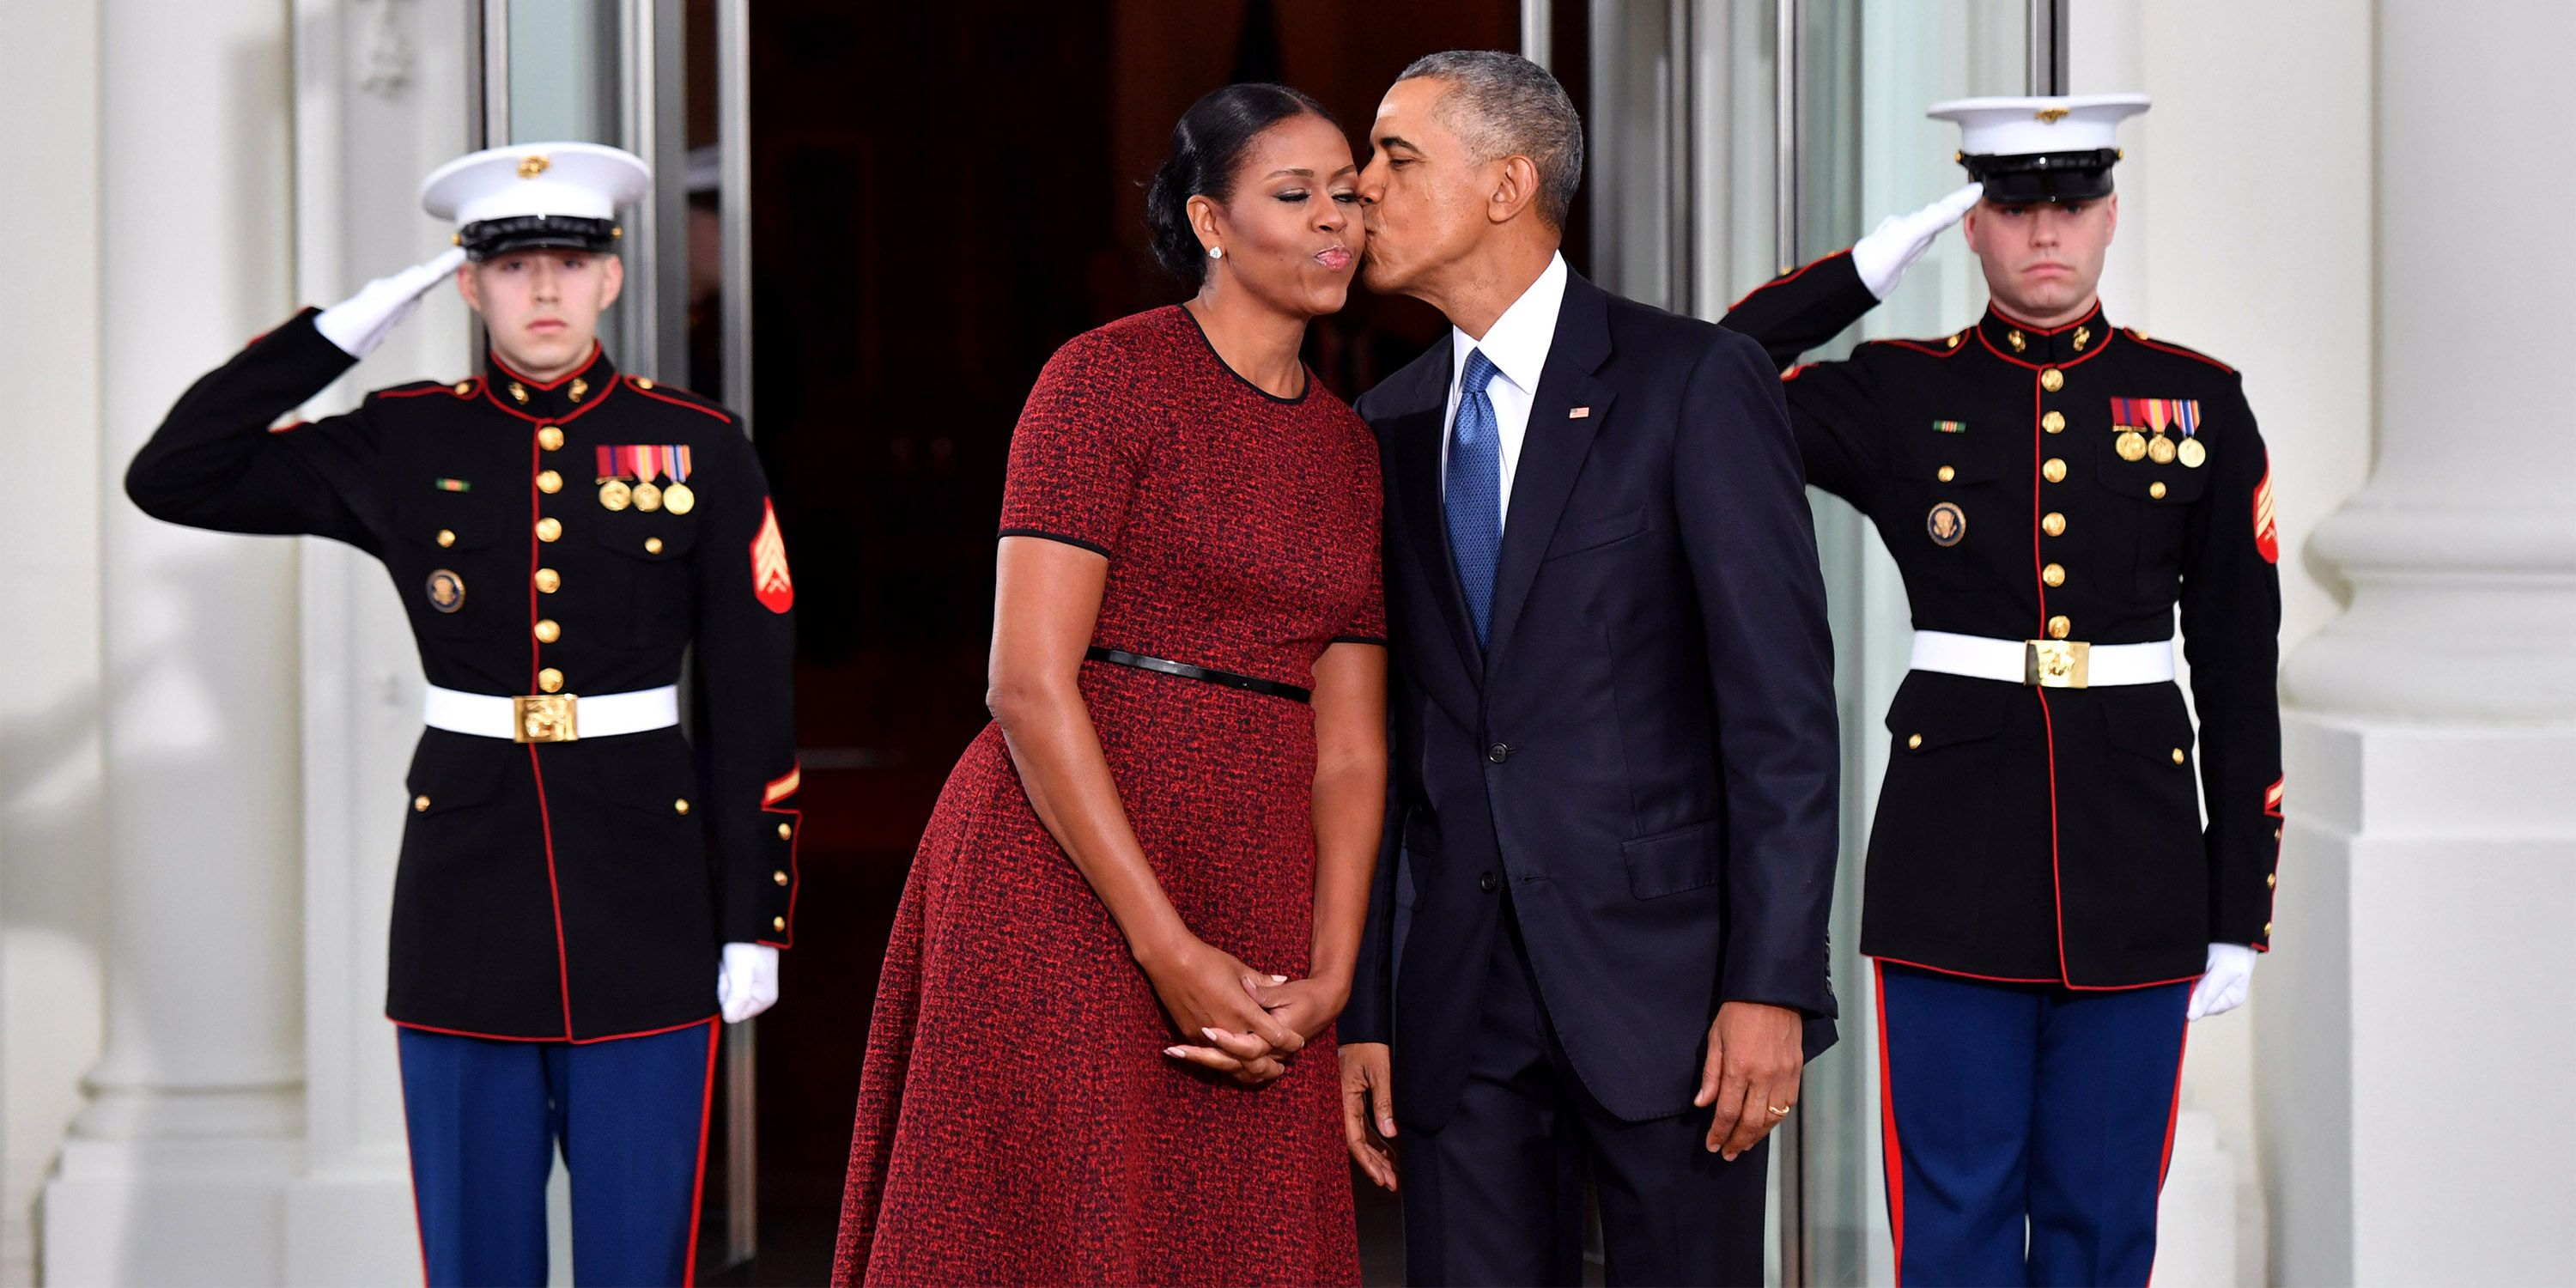 Barack and Michelle Obama's Sweetest Moments in Photos - Barack and